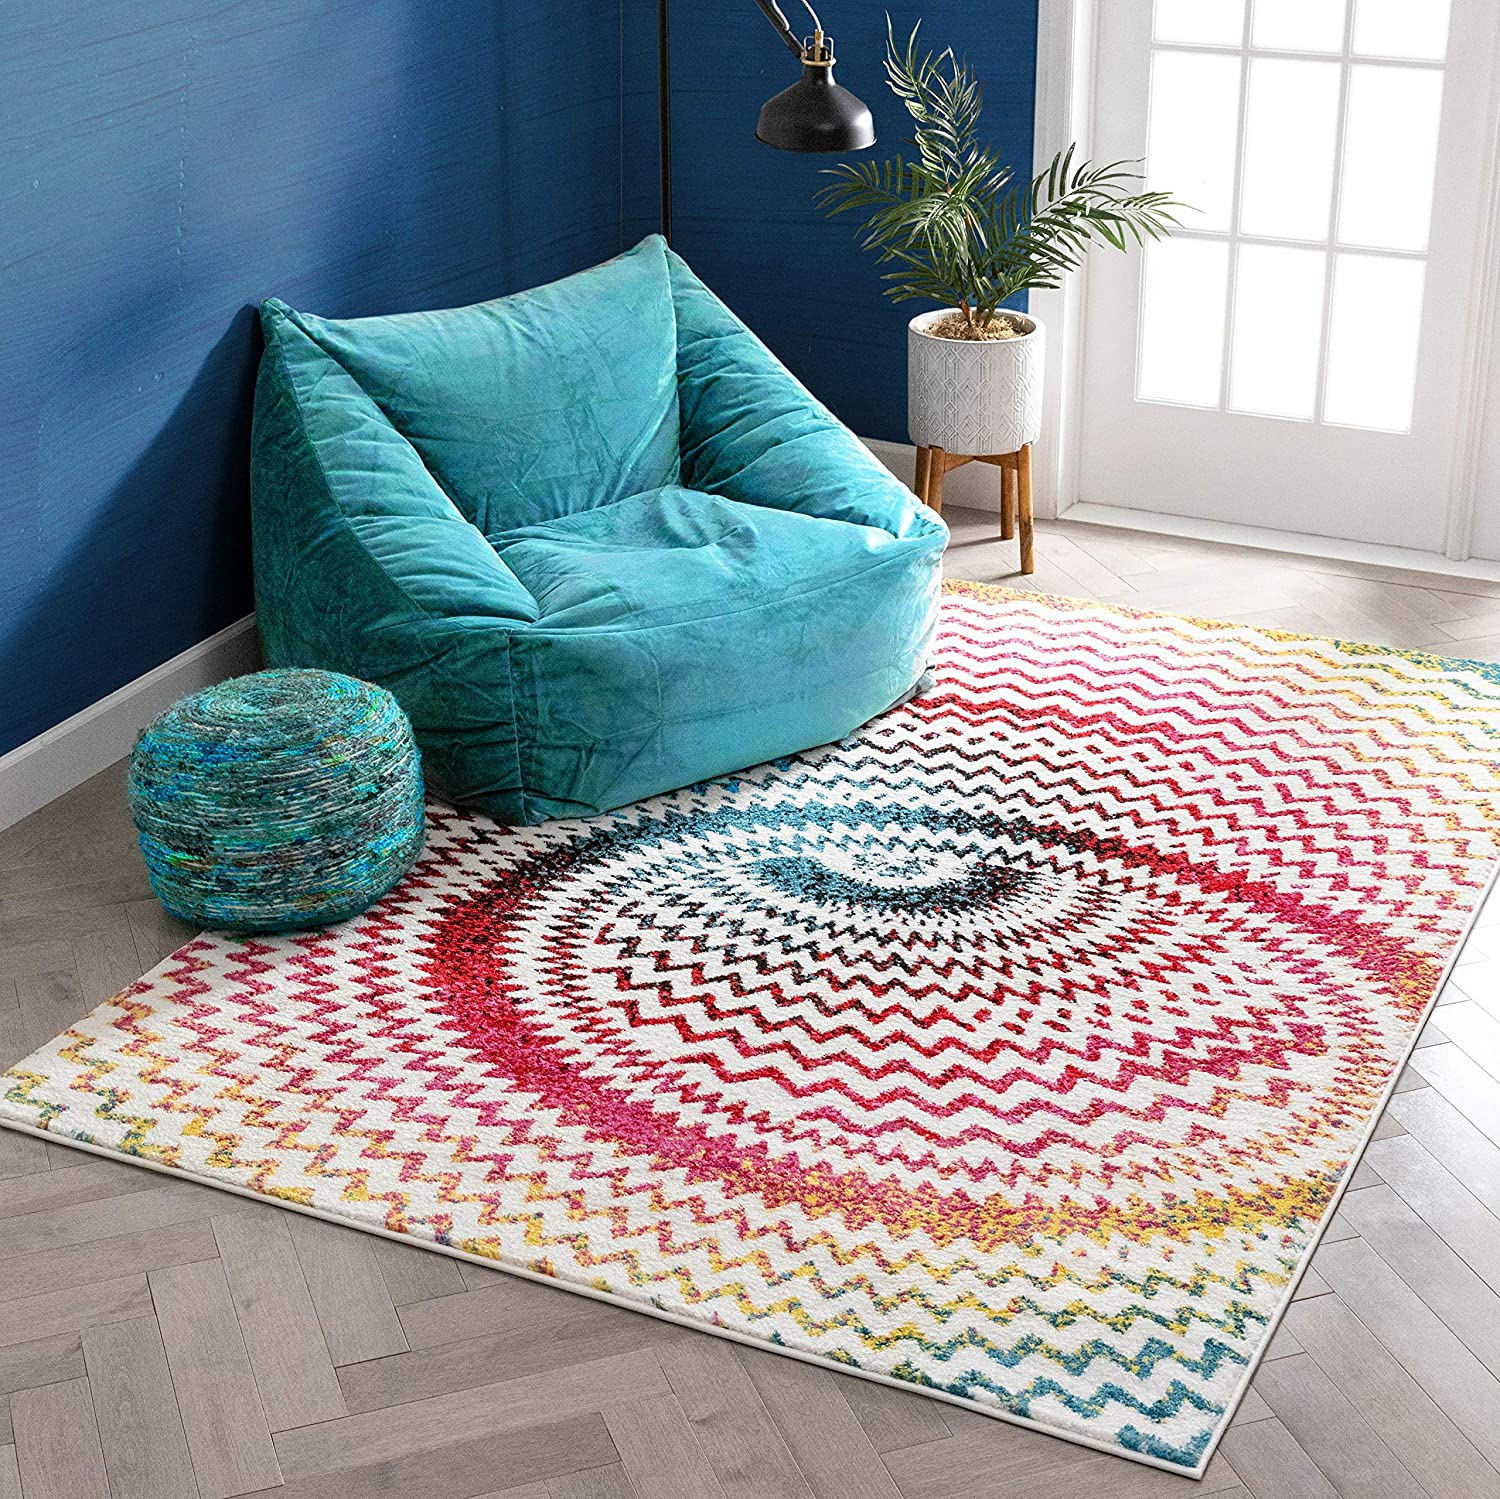 Warp Multi Chevron Red Blue Yellow Green Zigzag Modern Abstract 3d Area Rug 7 10 X 9 10 Easy Clean Stain Fade Resistant Shed Free Contemporary Geometric Thick Soft Plush Living Dining Room Home Kitchen Amazon Com